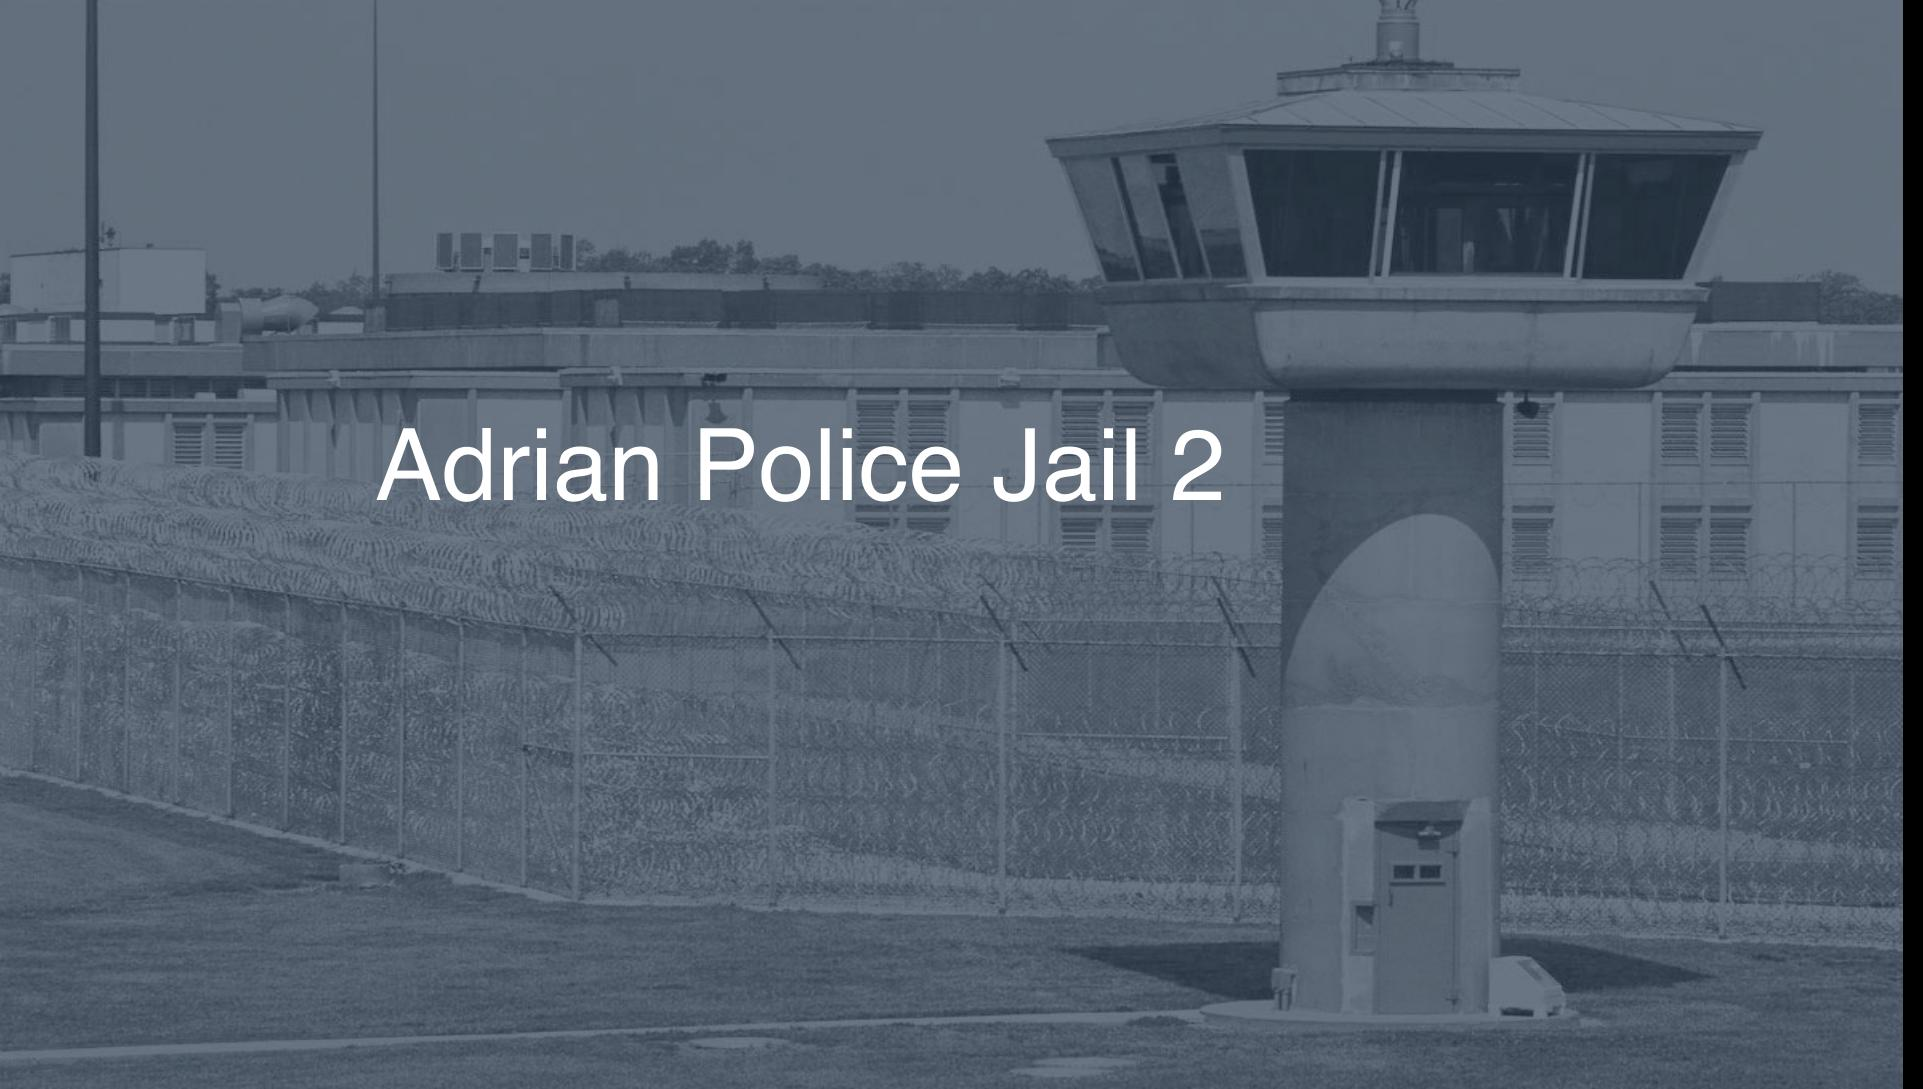 Adrian Police Jail correctional facility picture